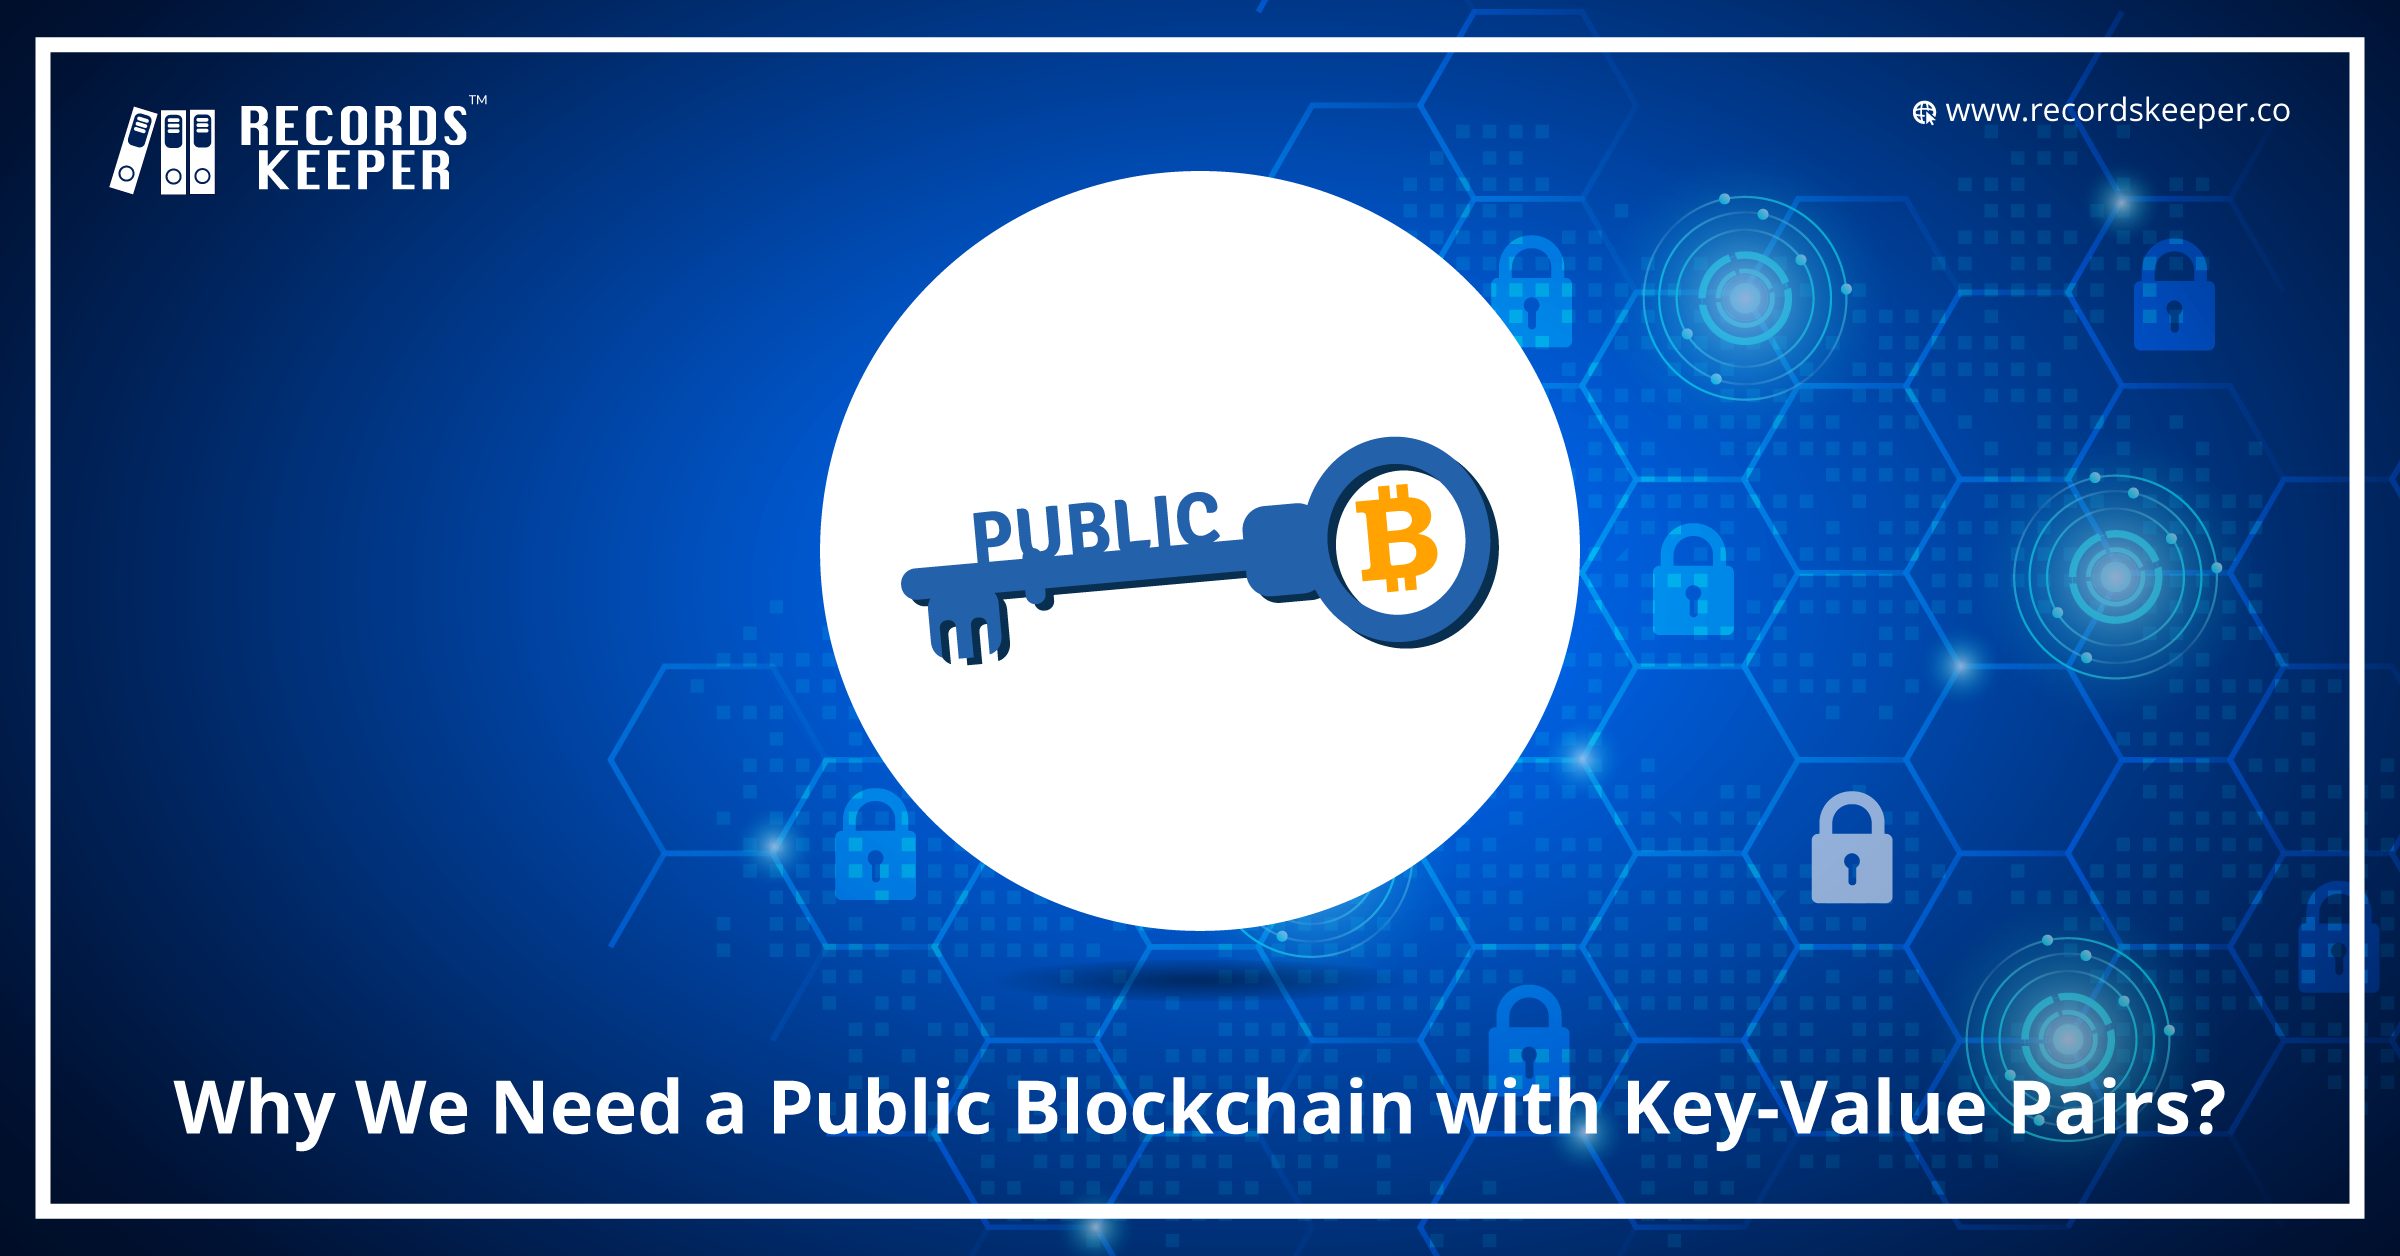 Why We Need a Public Blockchain with Key-Value Pairs?